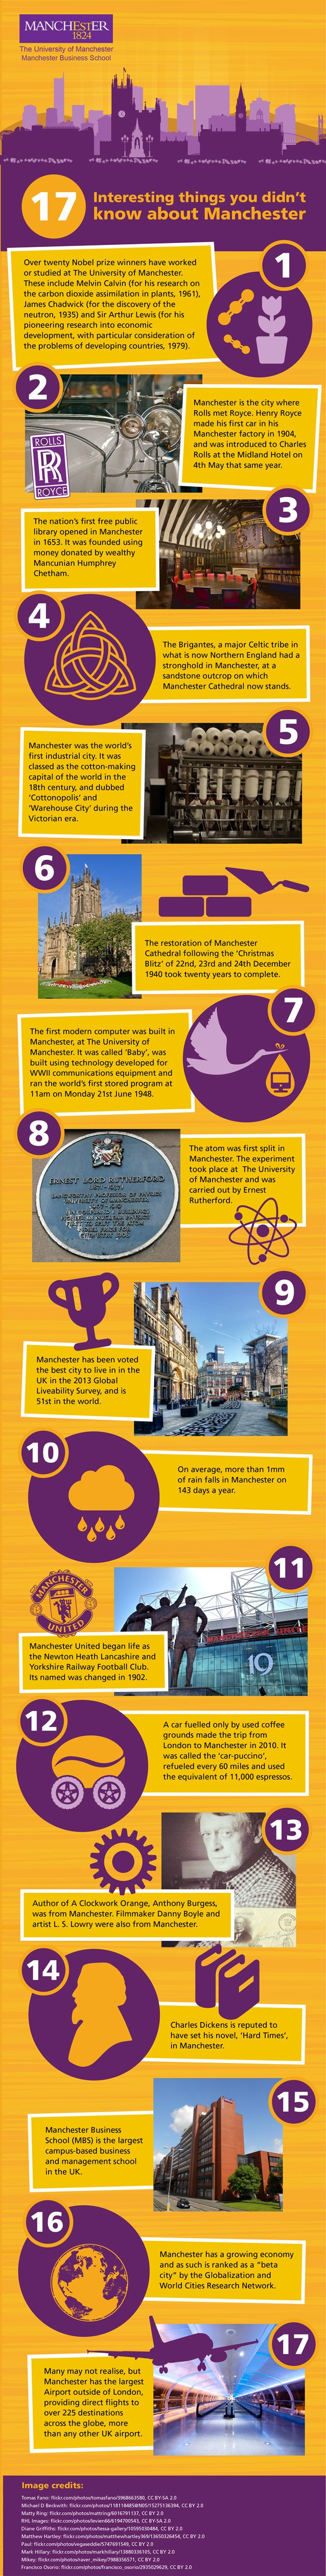 17 facts about Manchester